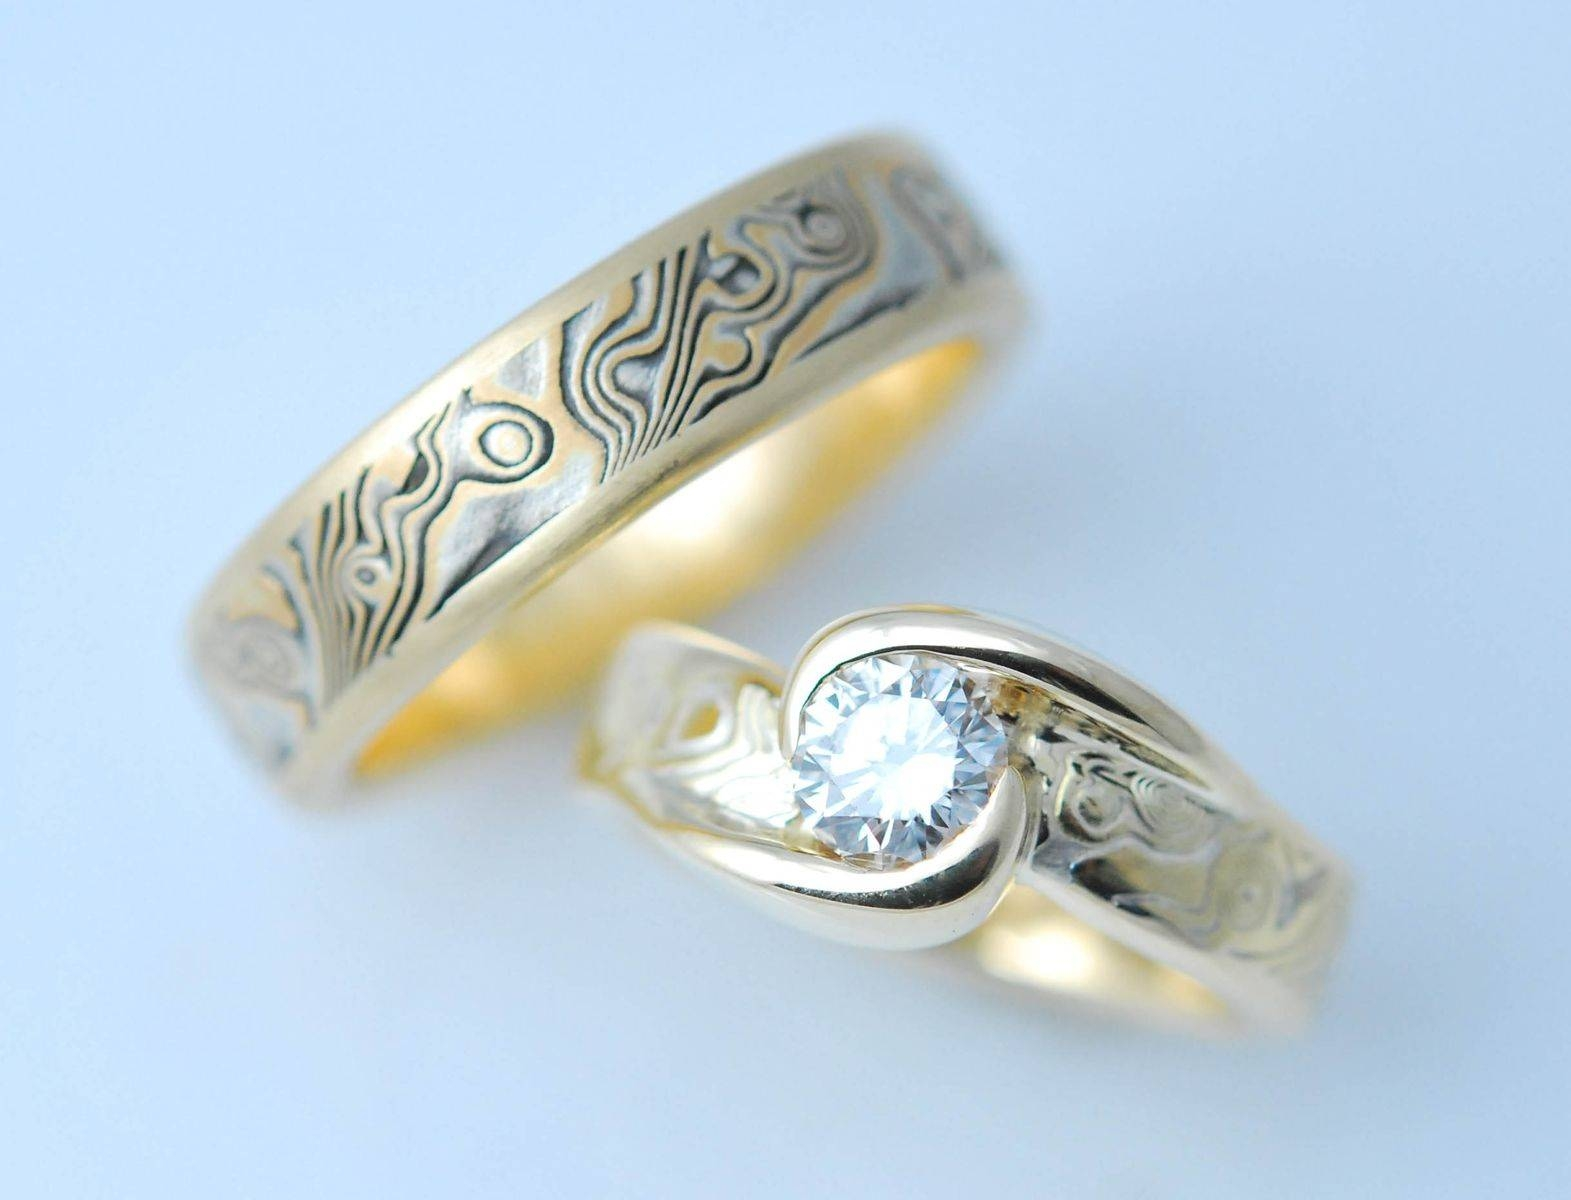 Handmade Custom 18k Yellow Gold And Sterling Wedding Mokume Gane Intended For Mokume Gane Wedding Rings (View 4 of 15)